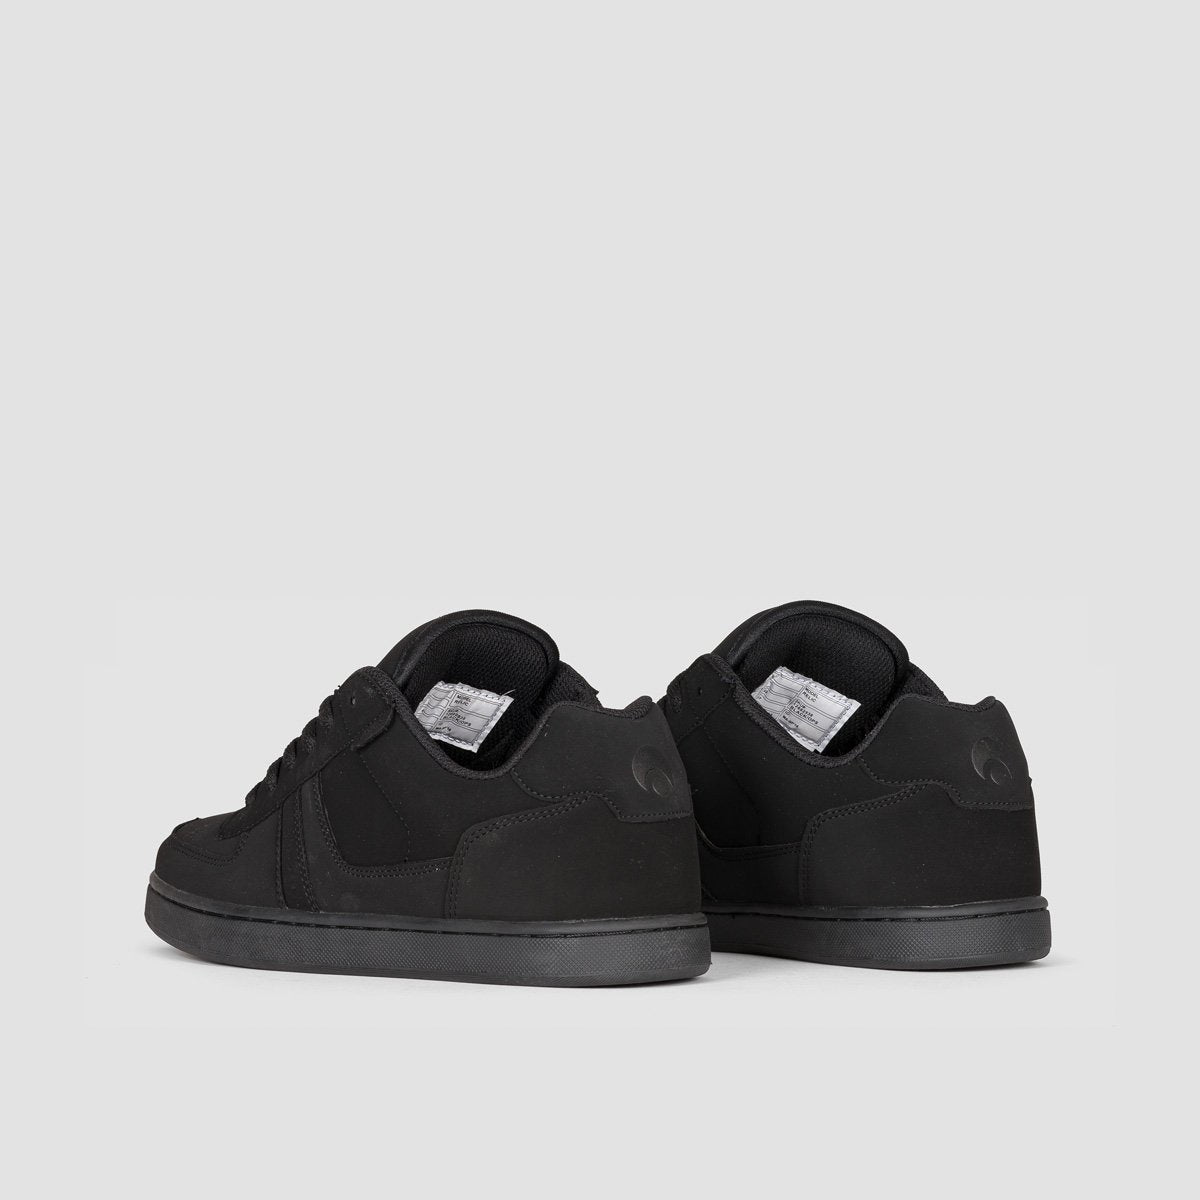 Osiris Relic Black/Ops - Footwear